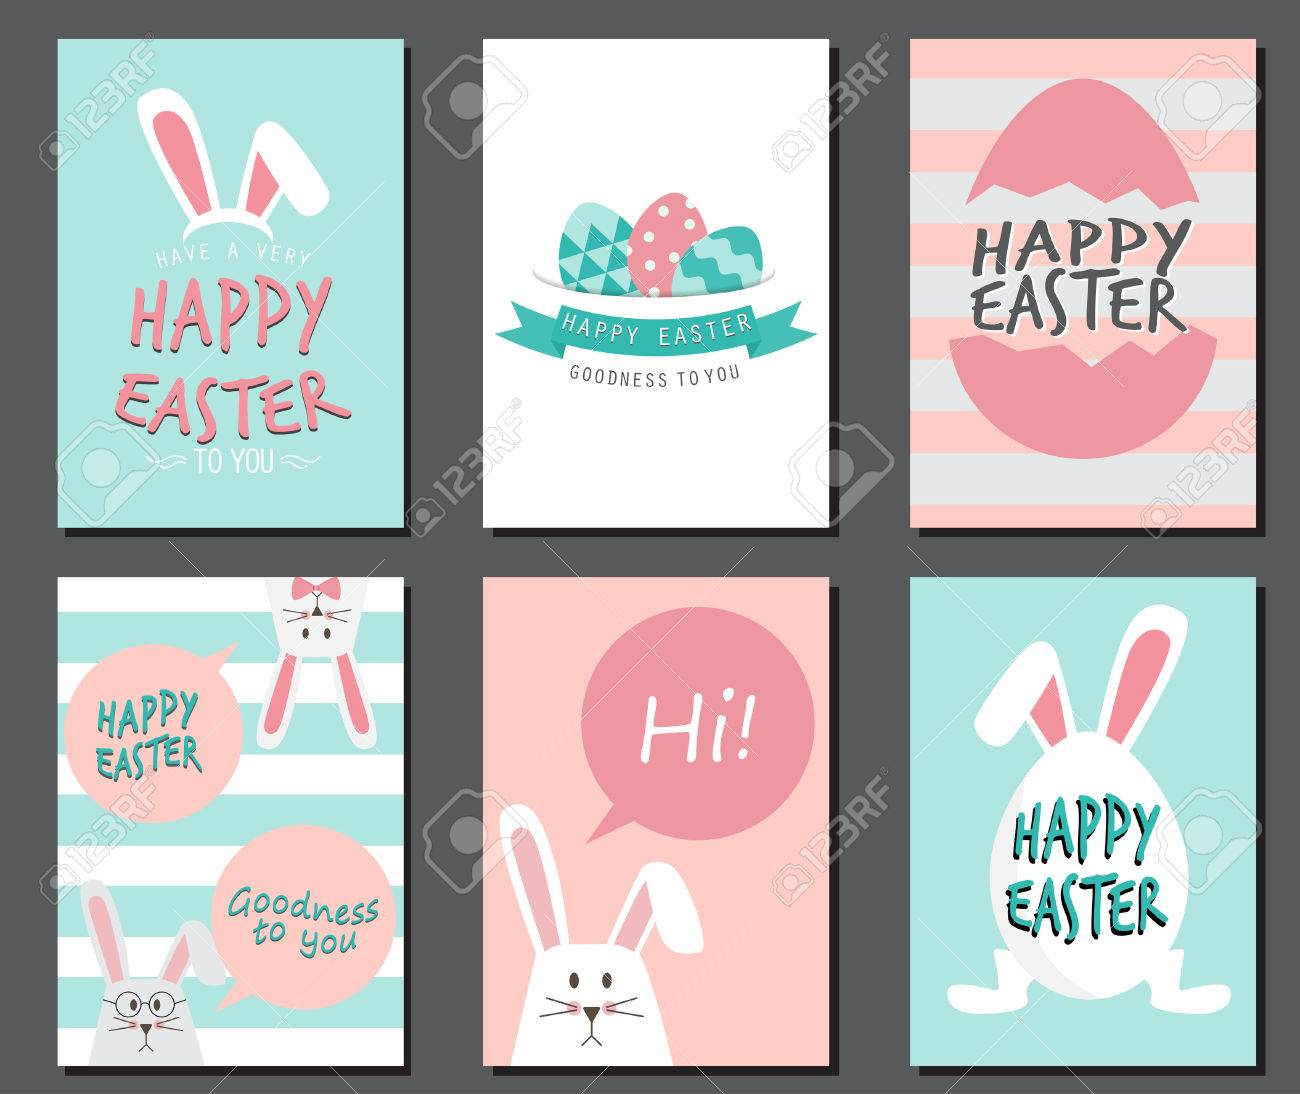 Happy easter day. cute bunny Ears with eggs and text logo on sweet blue background, can be use for greeting card, text can be added. layout template in A4 size. vector illustration - 53611236